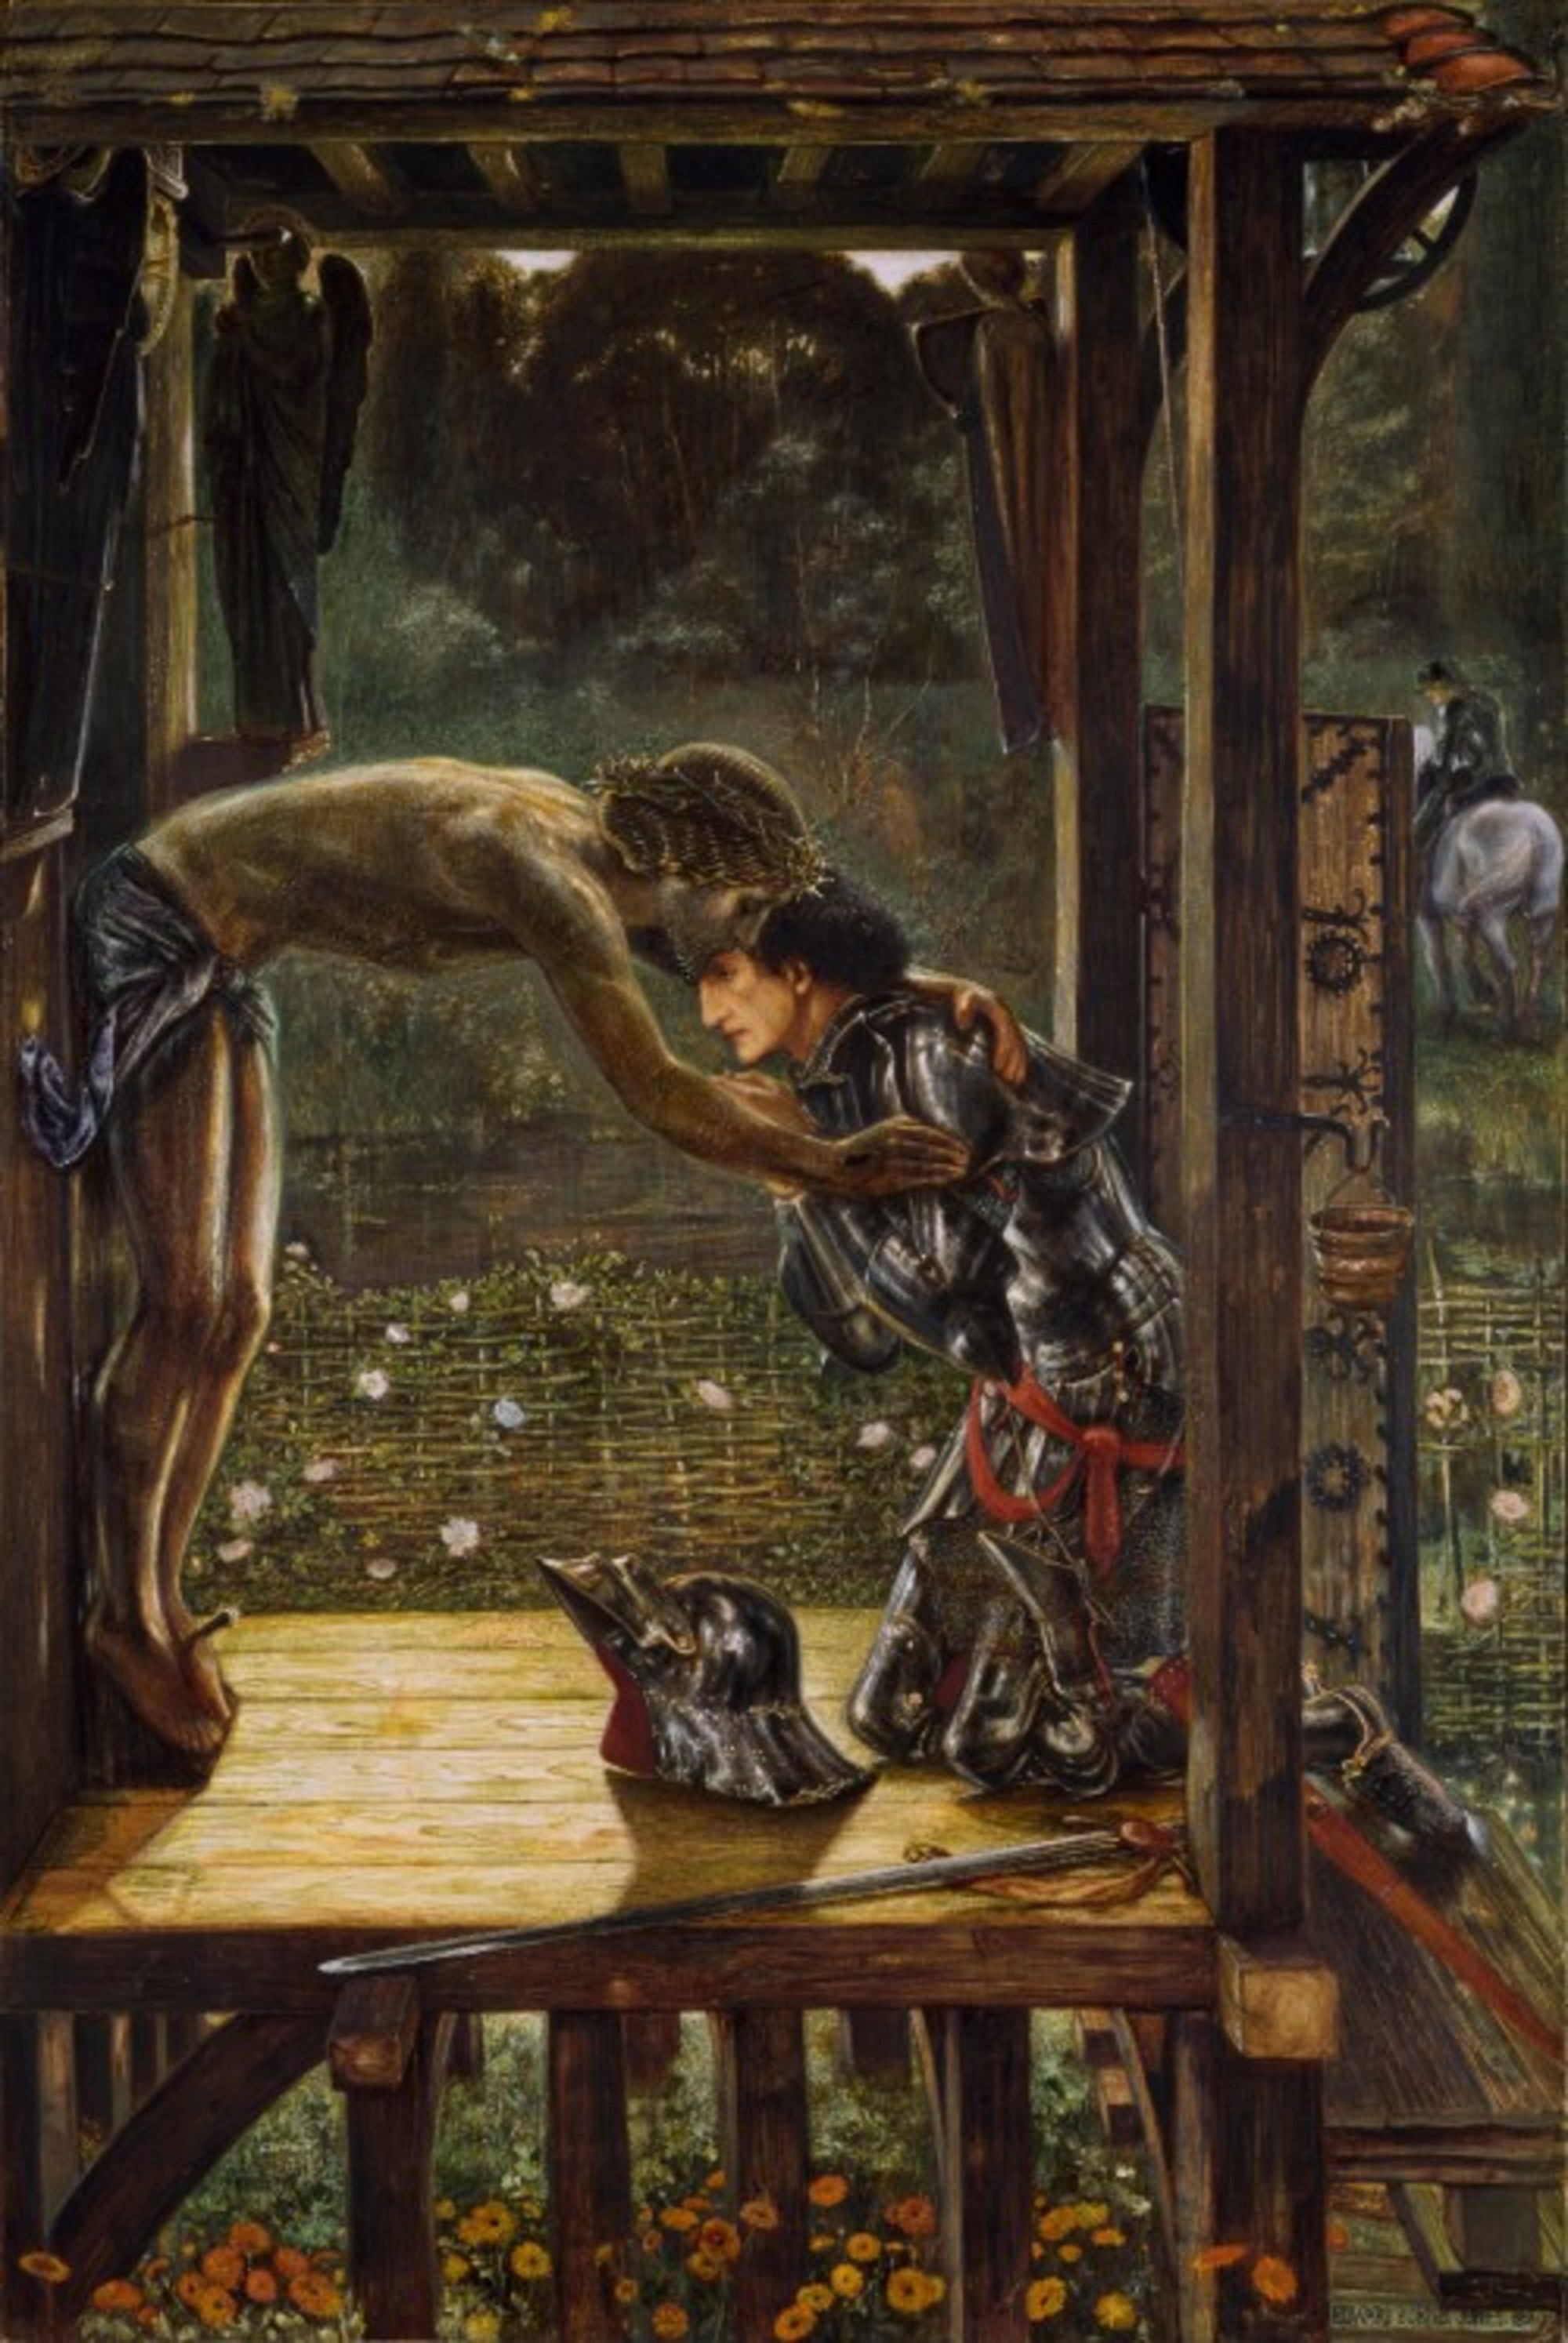 Edward-Burne-Jones---The-Merciful-Knight---Google-Art-Project.jpg